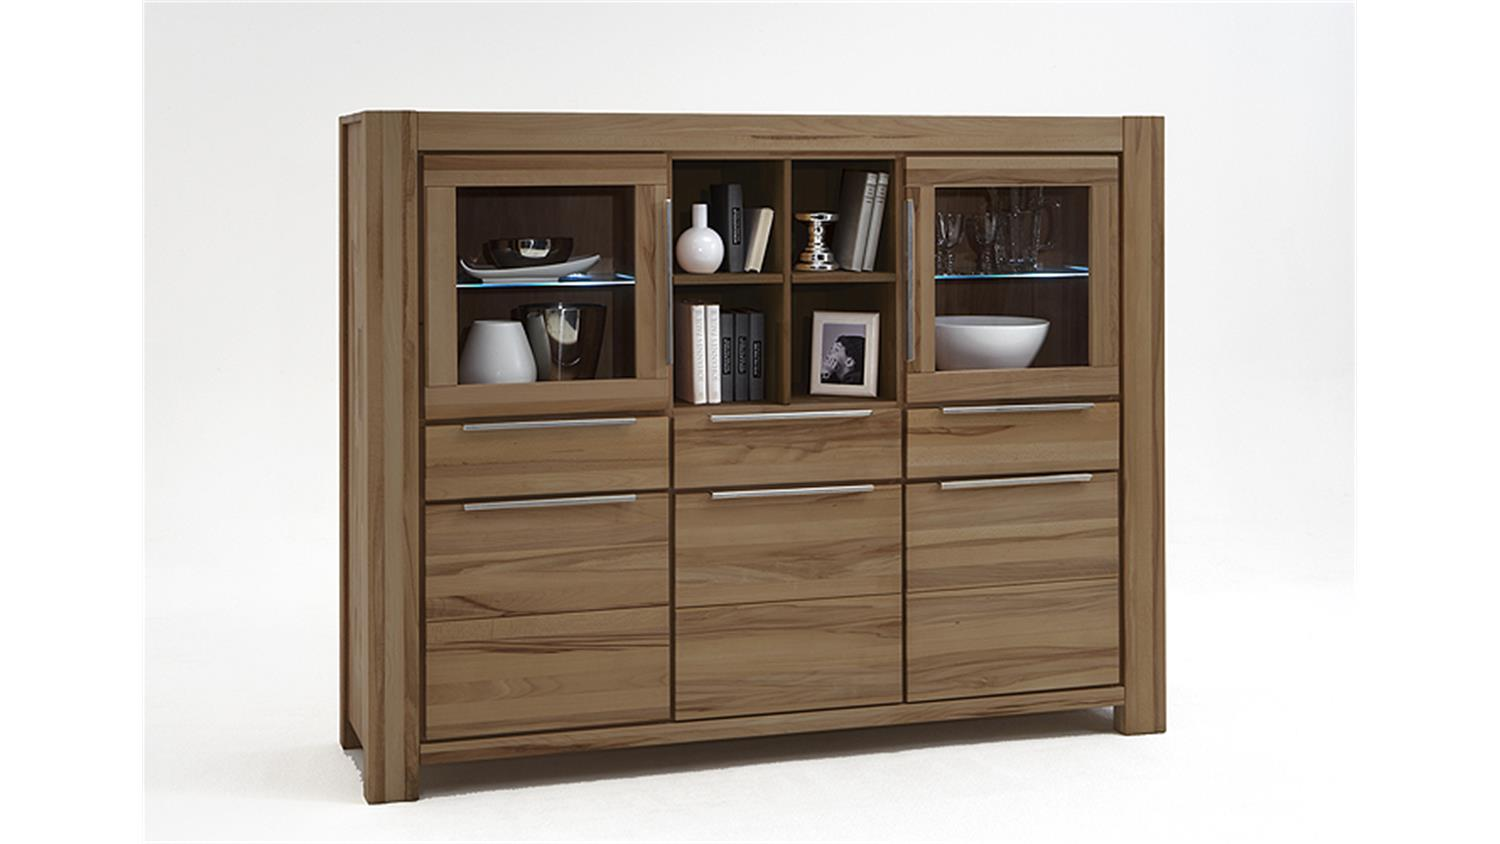 highboard nena vitrine sideboard in wildeiche massiv ge lt. Black Bedroom Furniture Sets. Home Design Ideas